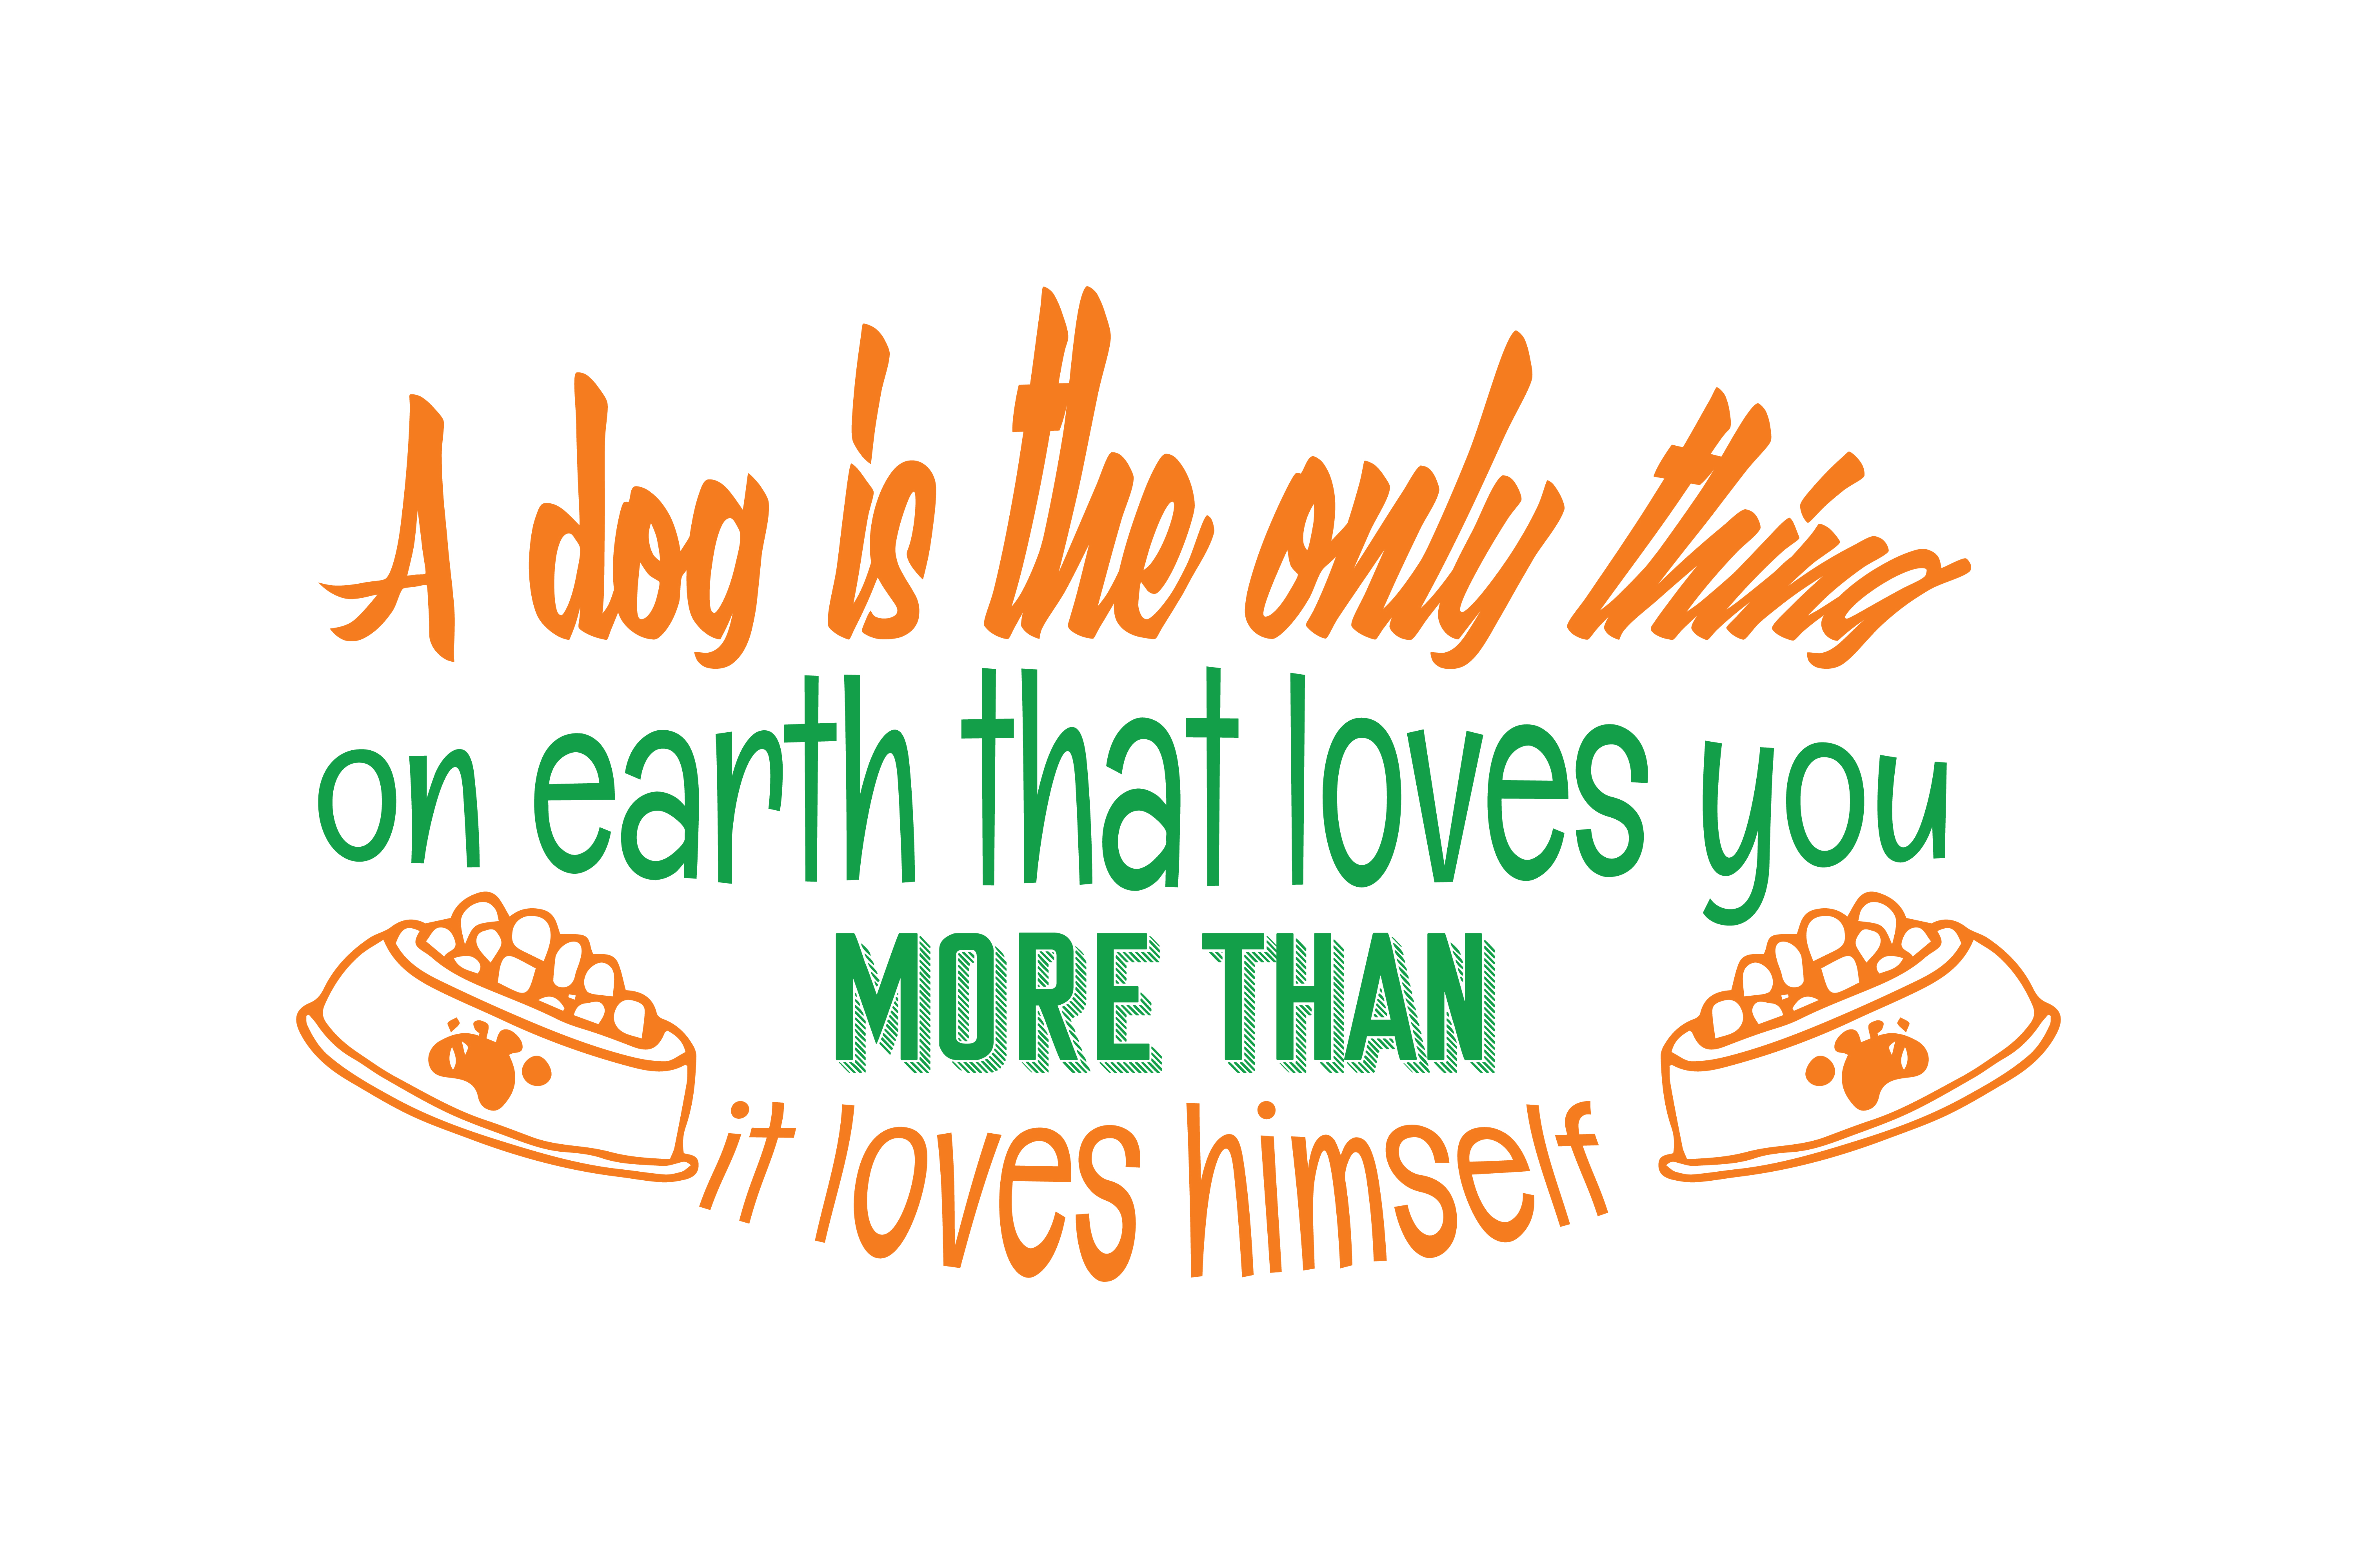 Download Free A Dog Is The Only Thing On Earth That Loves You More Than It Loves for Cricut Explore, Silhouette and other cutting machines.